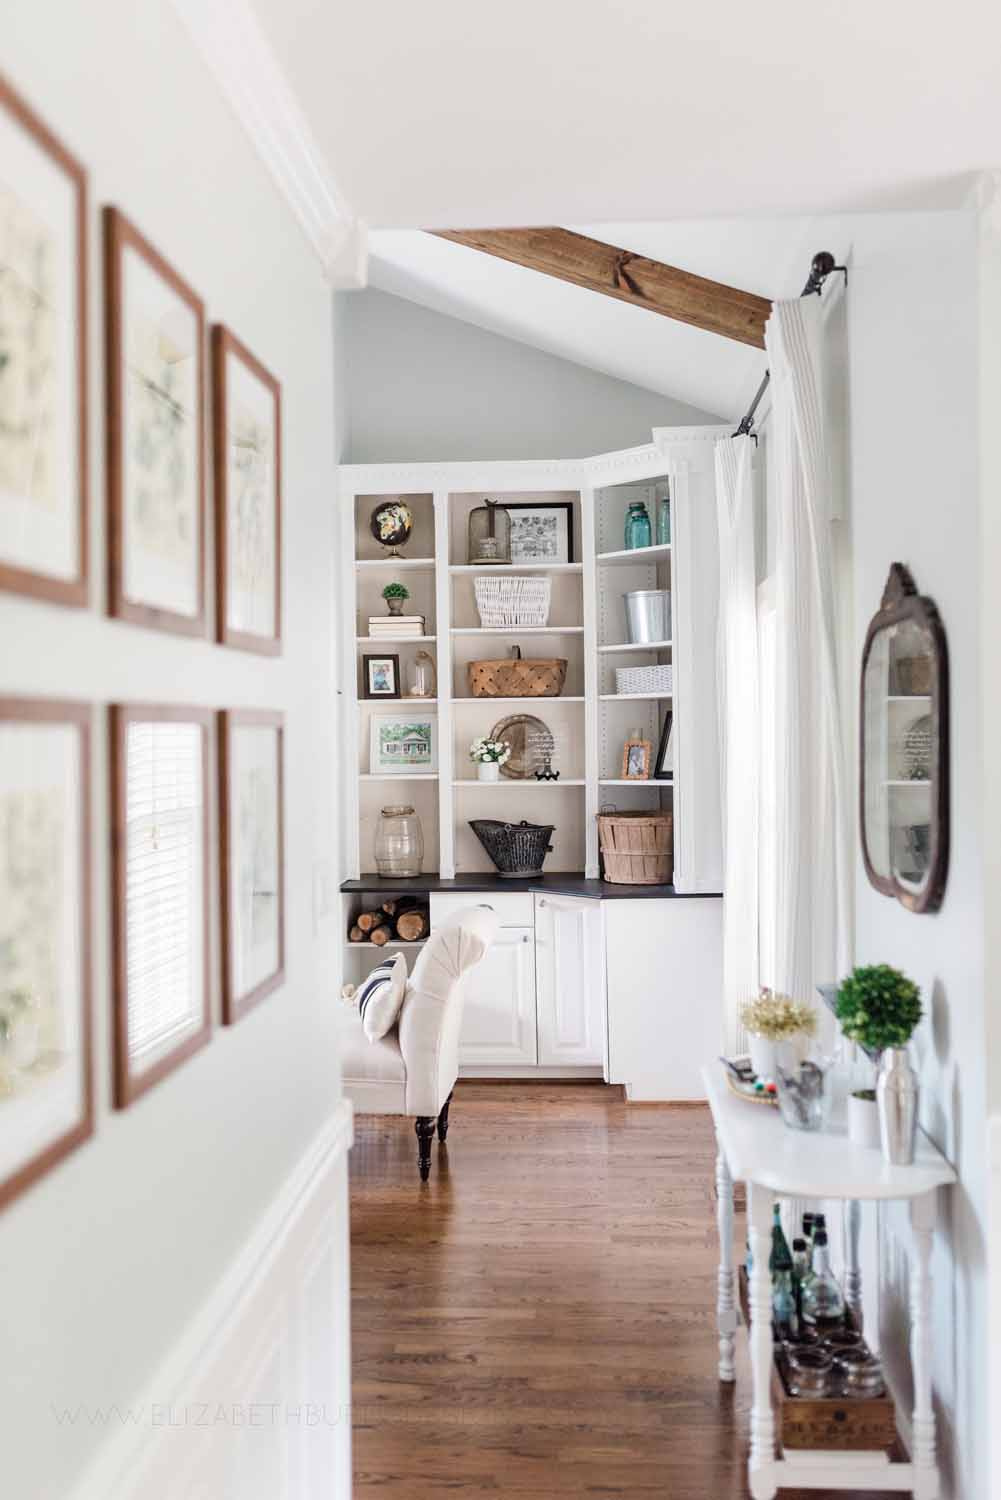 Elizabeth Burns Design Raleigh Interior Designer 1990s house remodel before and after Sherwin Williams Silver Strand SW 7057 Farmhouse Dining Room Barn Door Budget Renovation (9).jpg